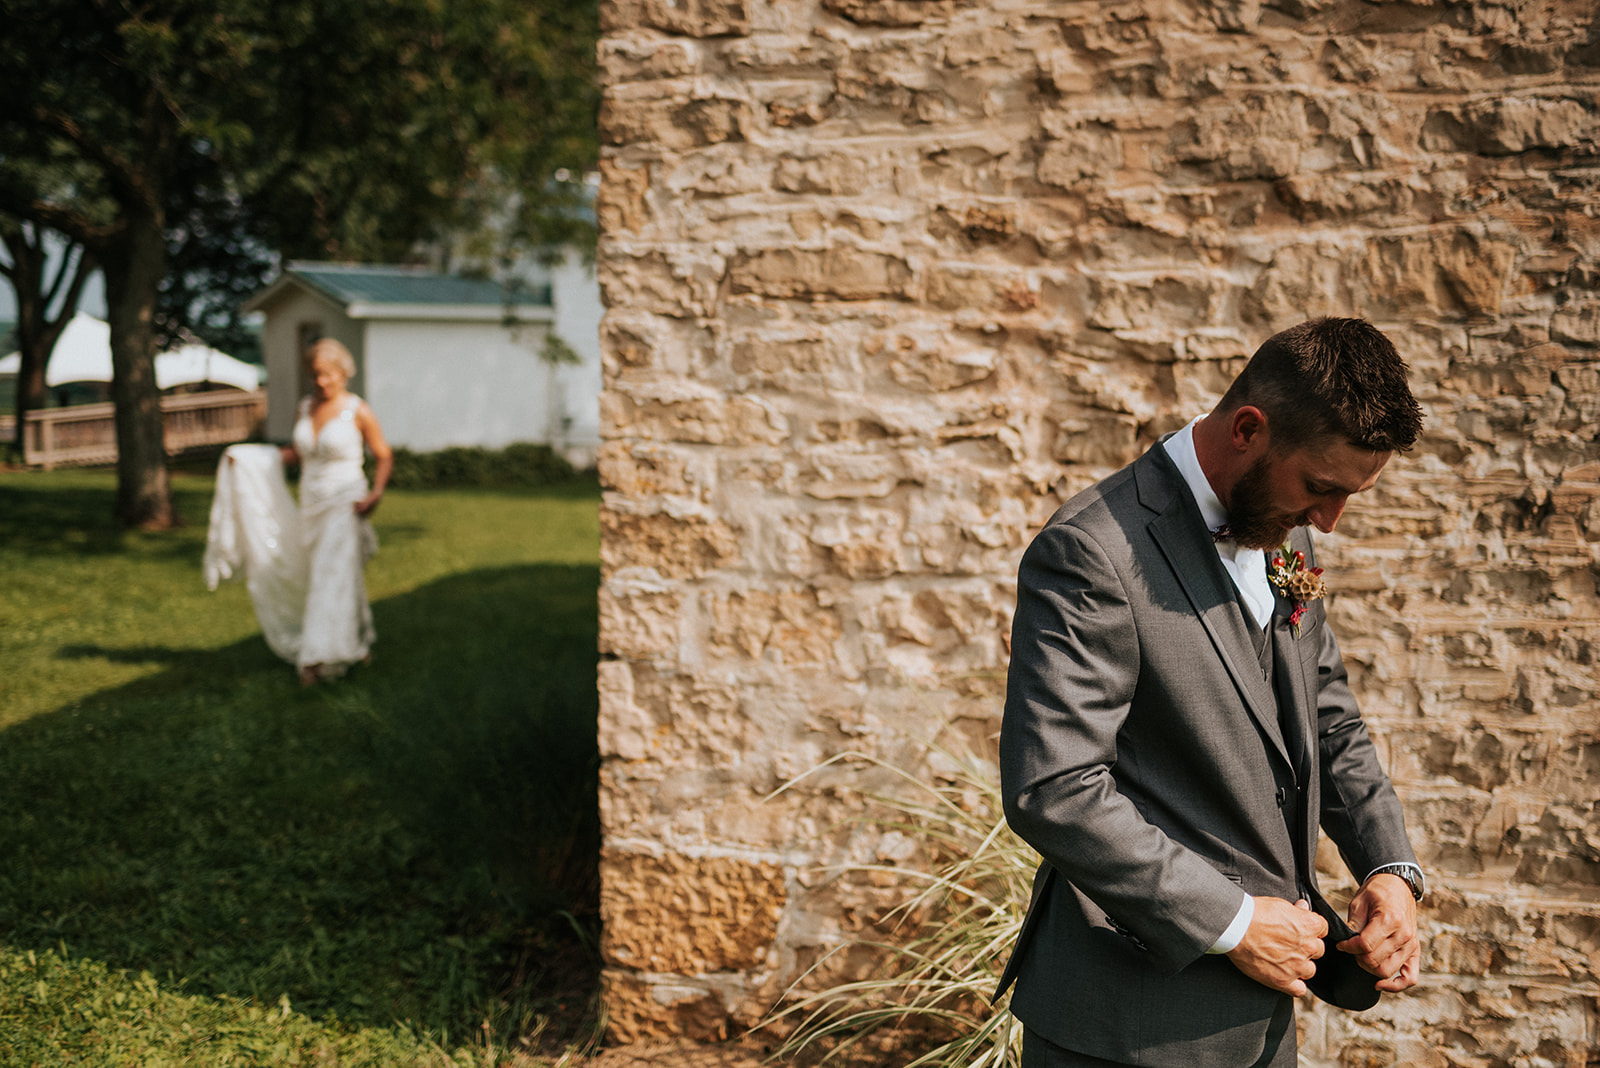 overthevineswisconsinwedding_0372.jpg